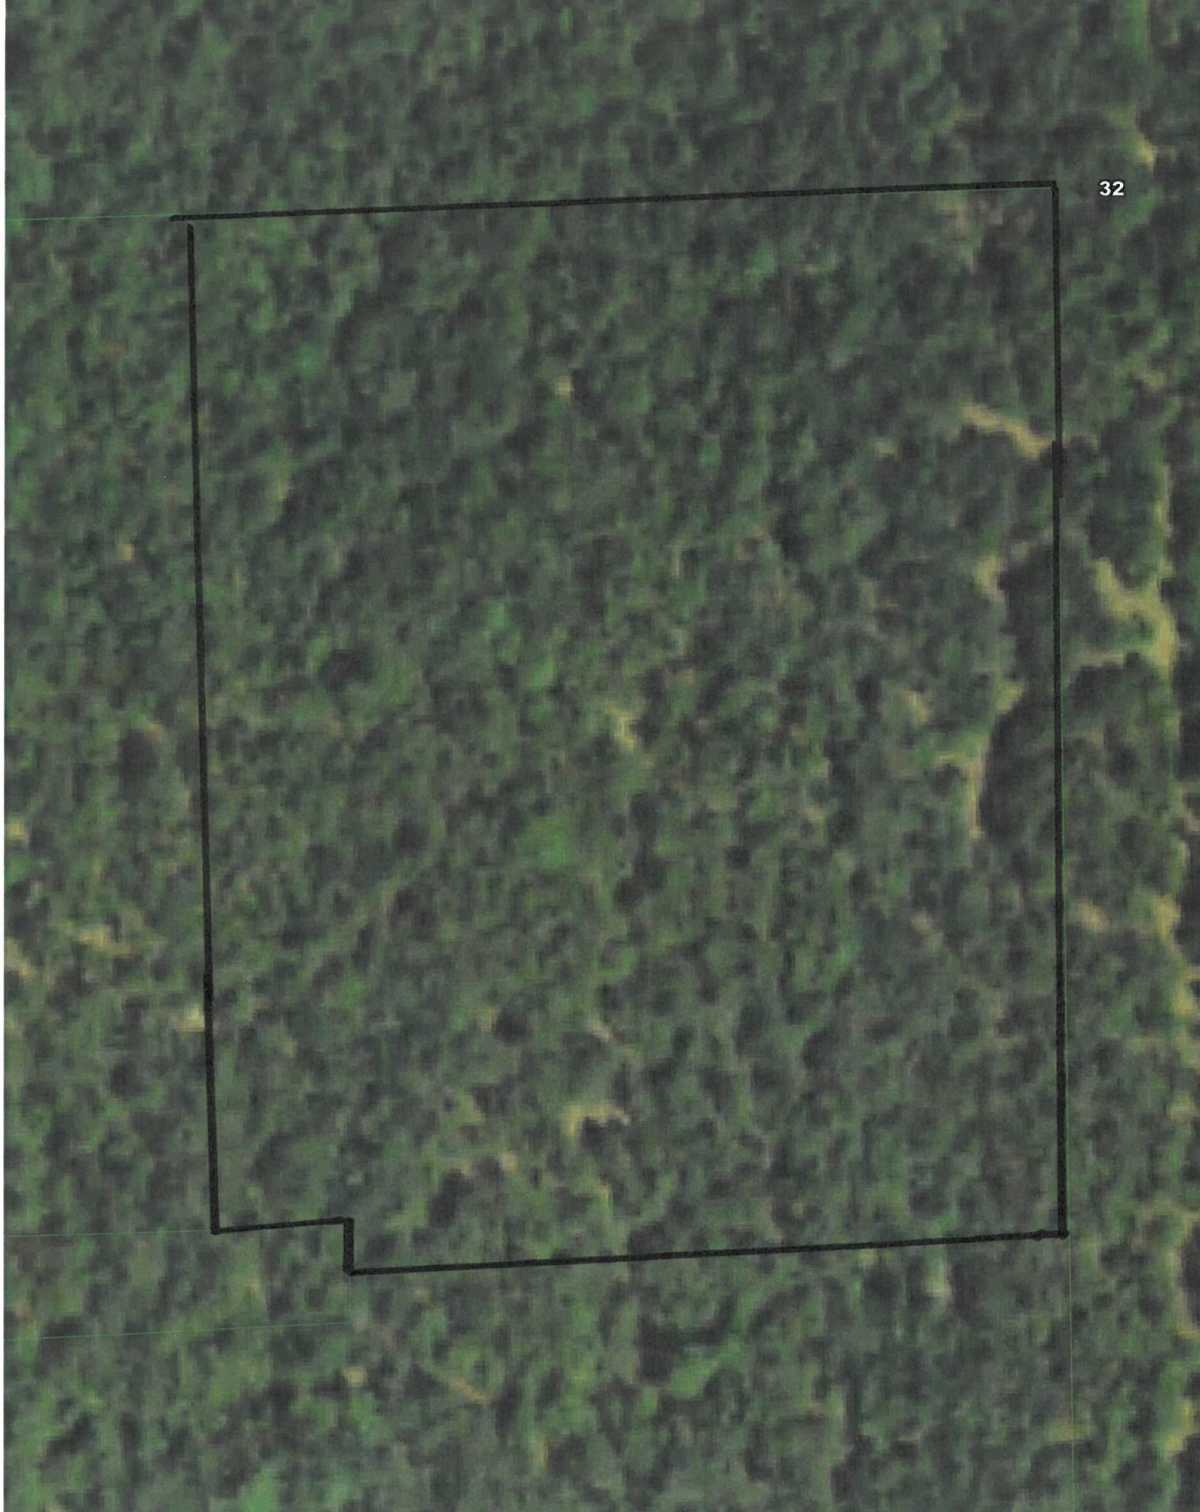 land, ranch, recreational, hunting, oklahoma, cabin | Winding Stairs #1 Bengal, OK 74563 1